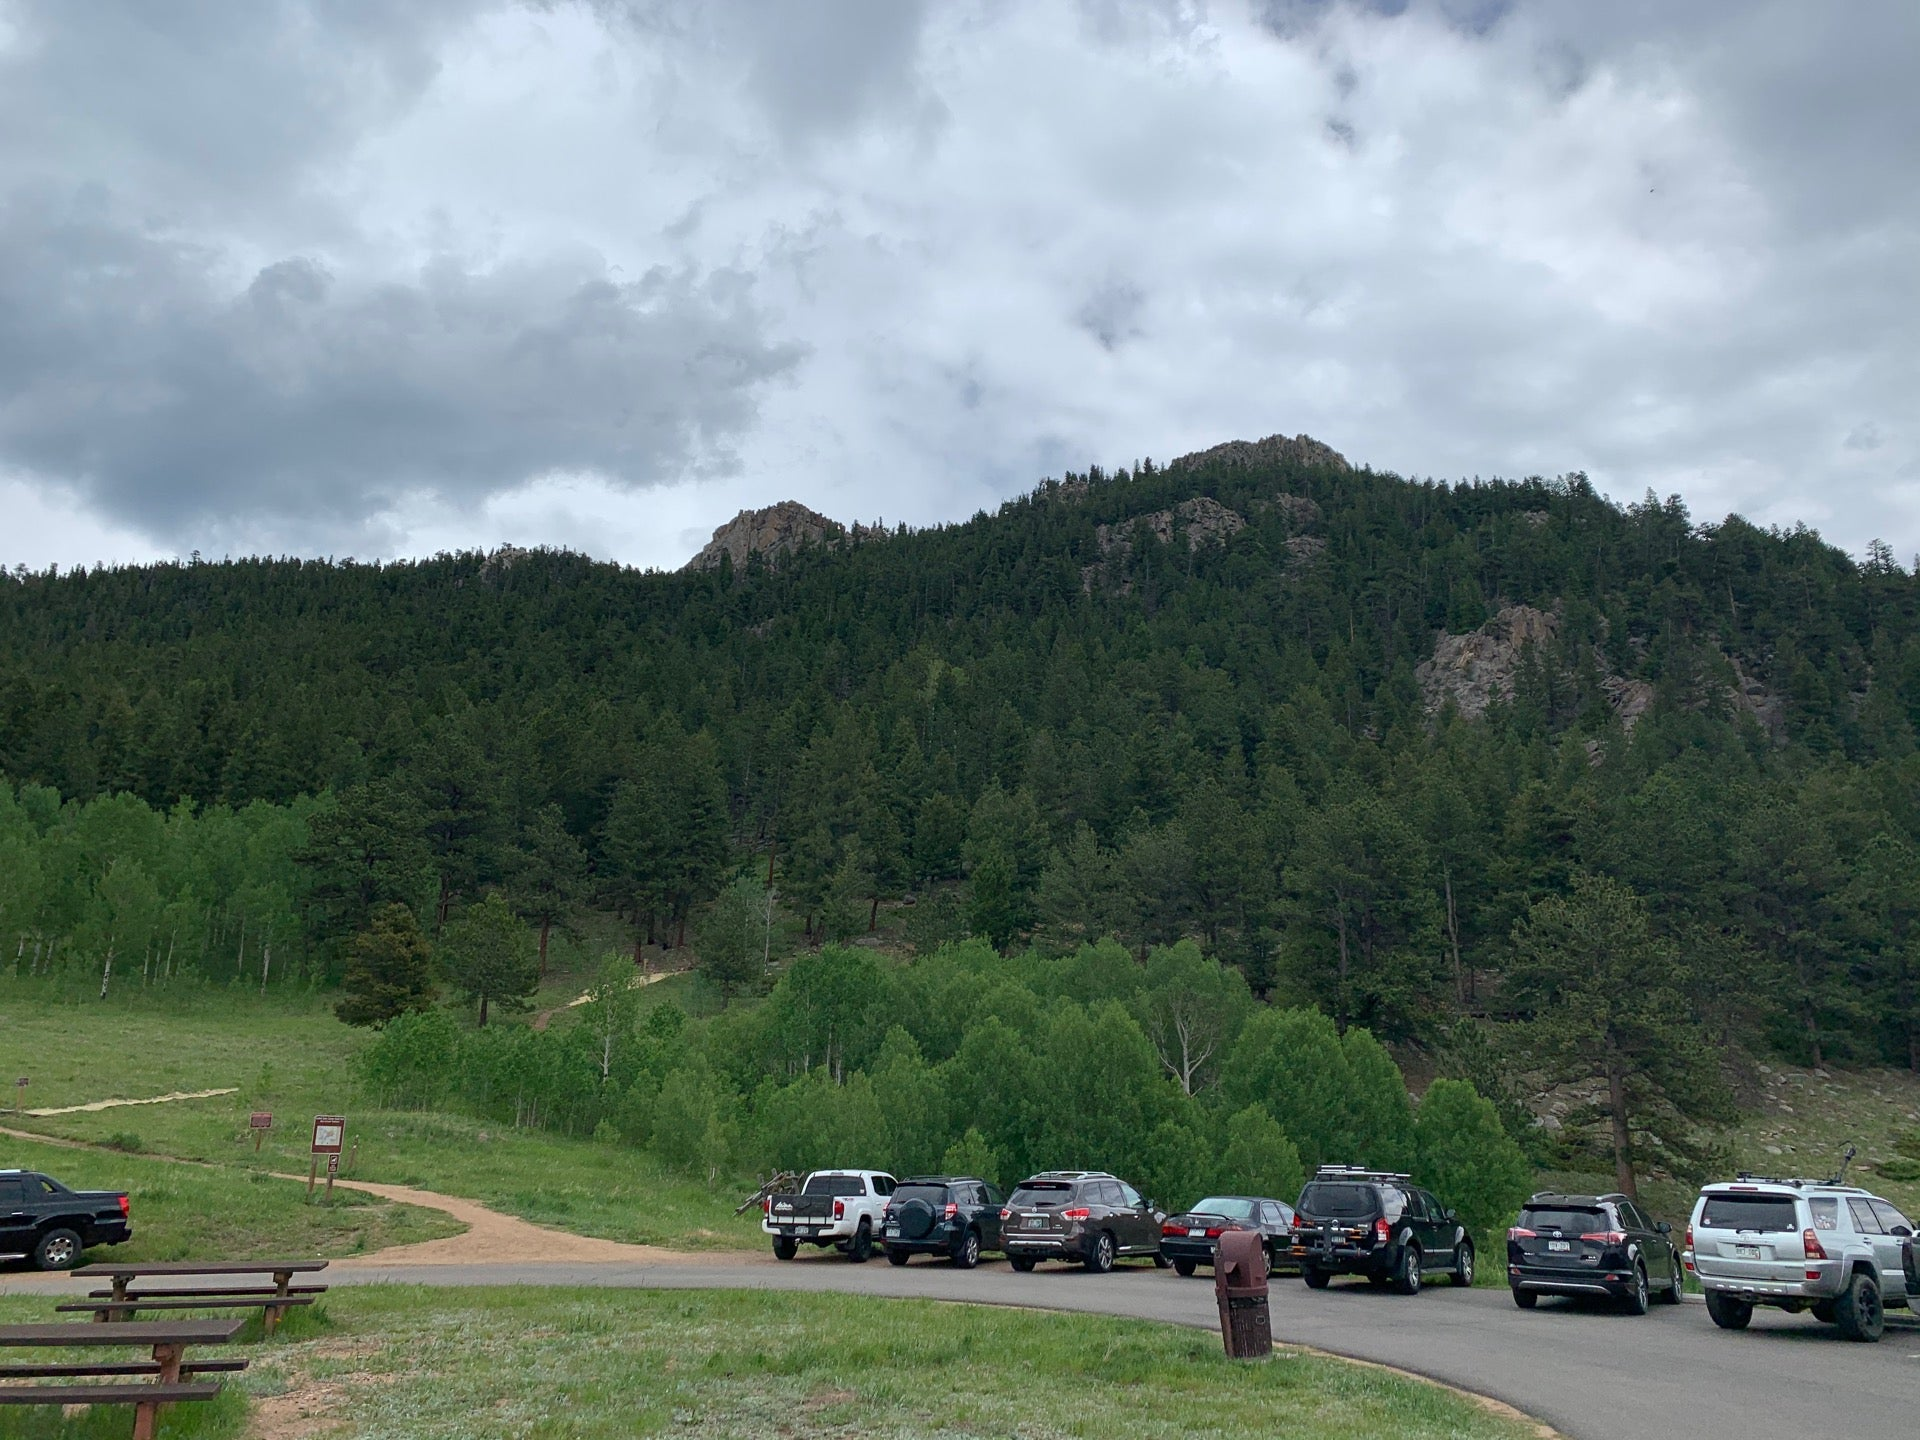 Checked in at Golden Gate Canyon State Park